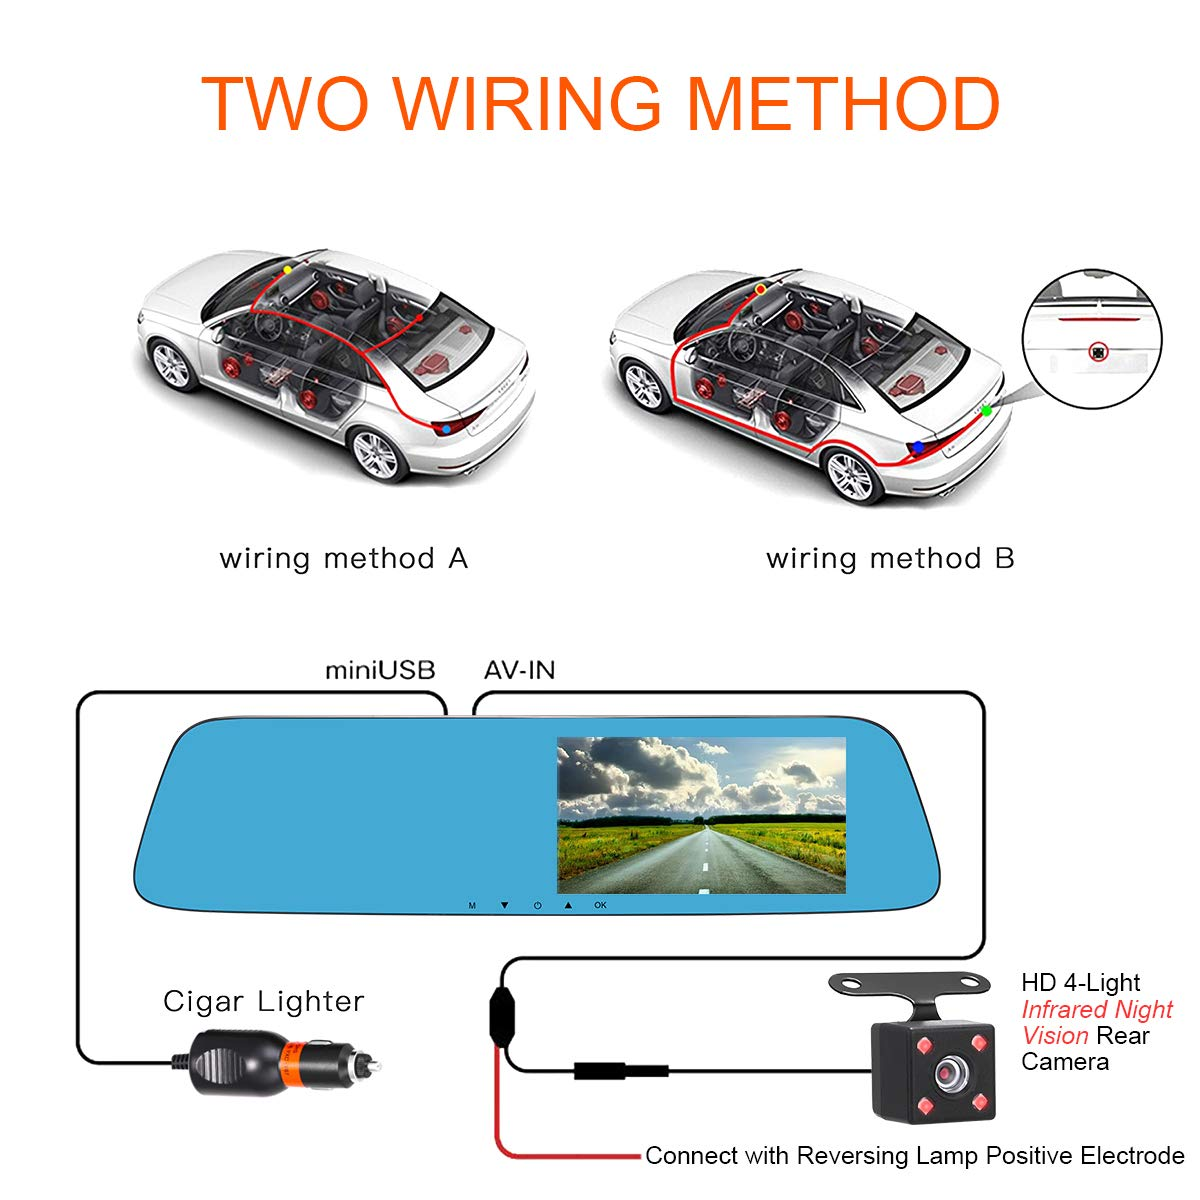 Car 5 Touch Scree 150/° Wide Angle Camera 1080P FHD Front Camera G-Sensor 720P Backup Infrared Light Night Vision Camera Reversing Parking Monitor Car 5 Touch Scree 150/° Wide Angle Camera Vatenzone Rear View Mirror Dash Cam